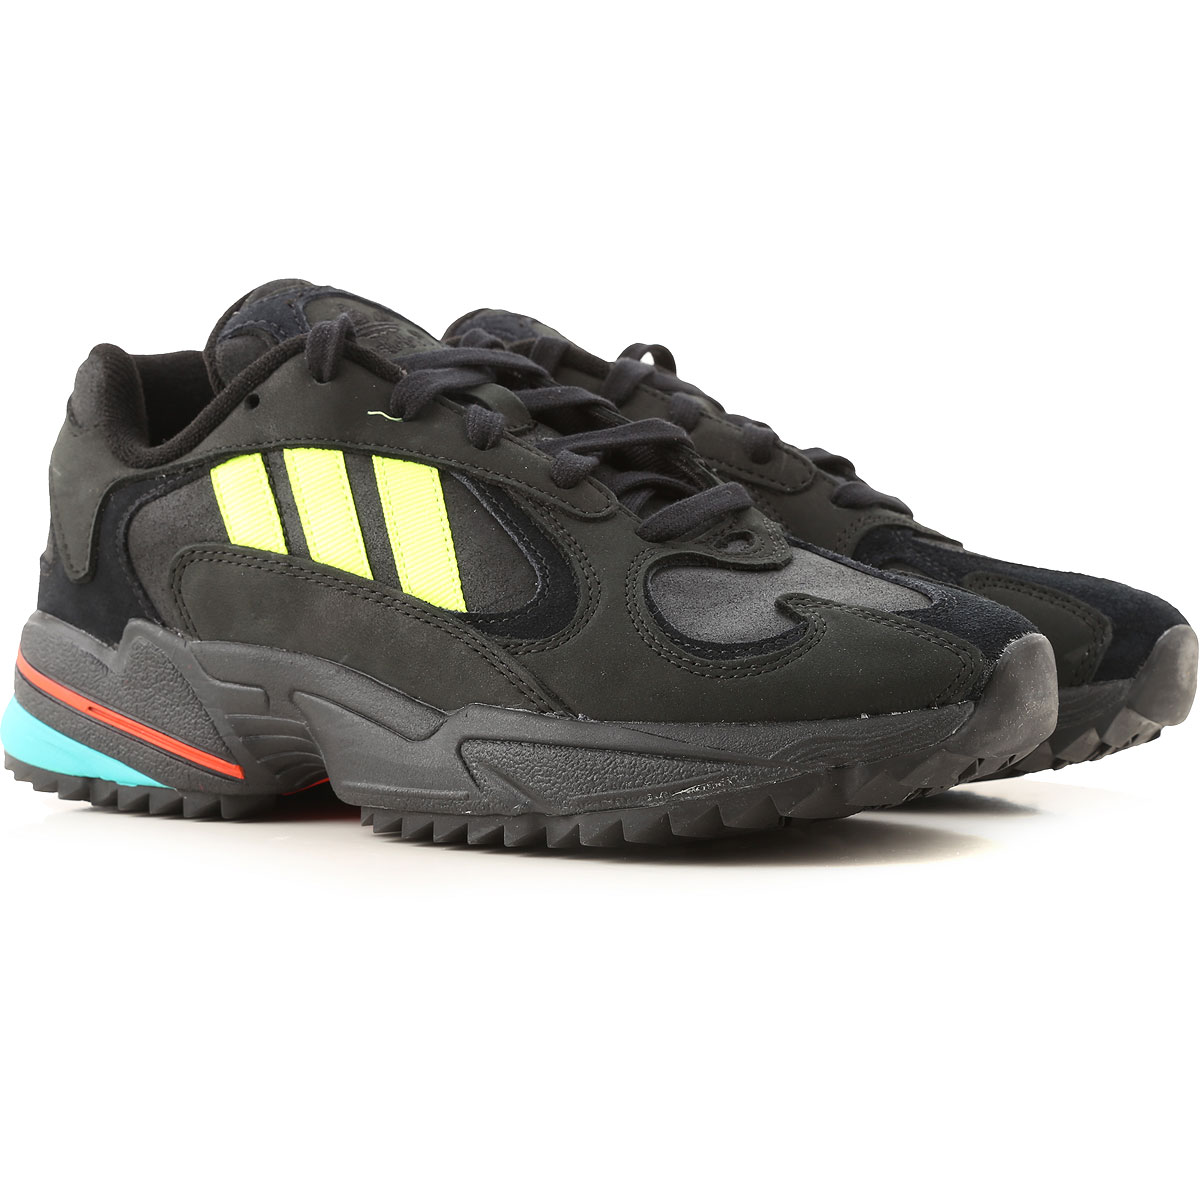 Adidas Sneakers for Men On Sale in Outlet, Black, Leather, 2019, 7 7.5 8 9